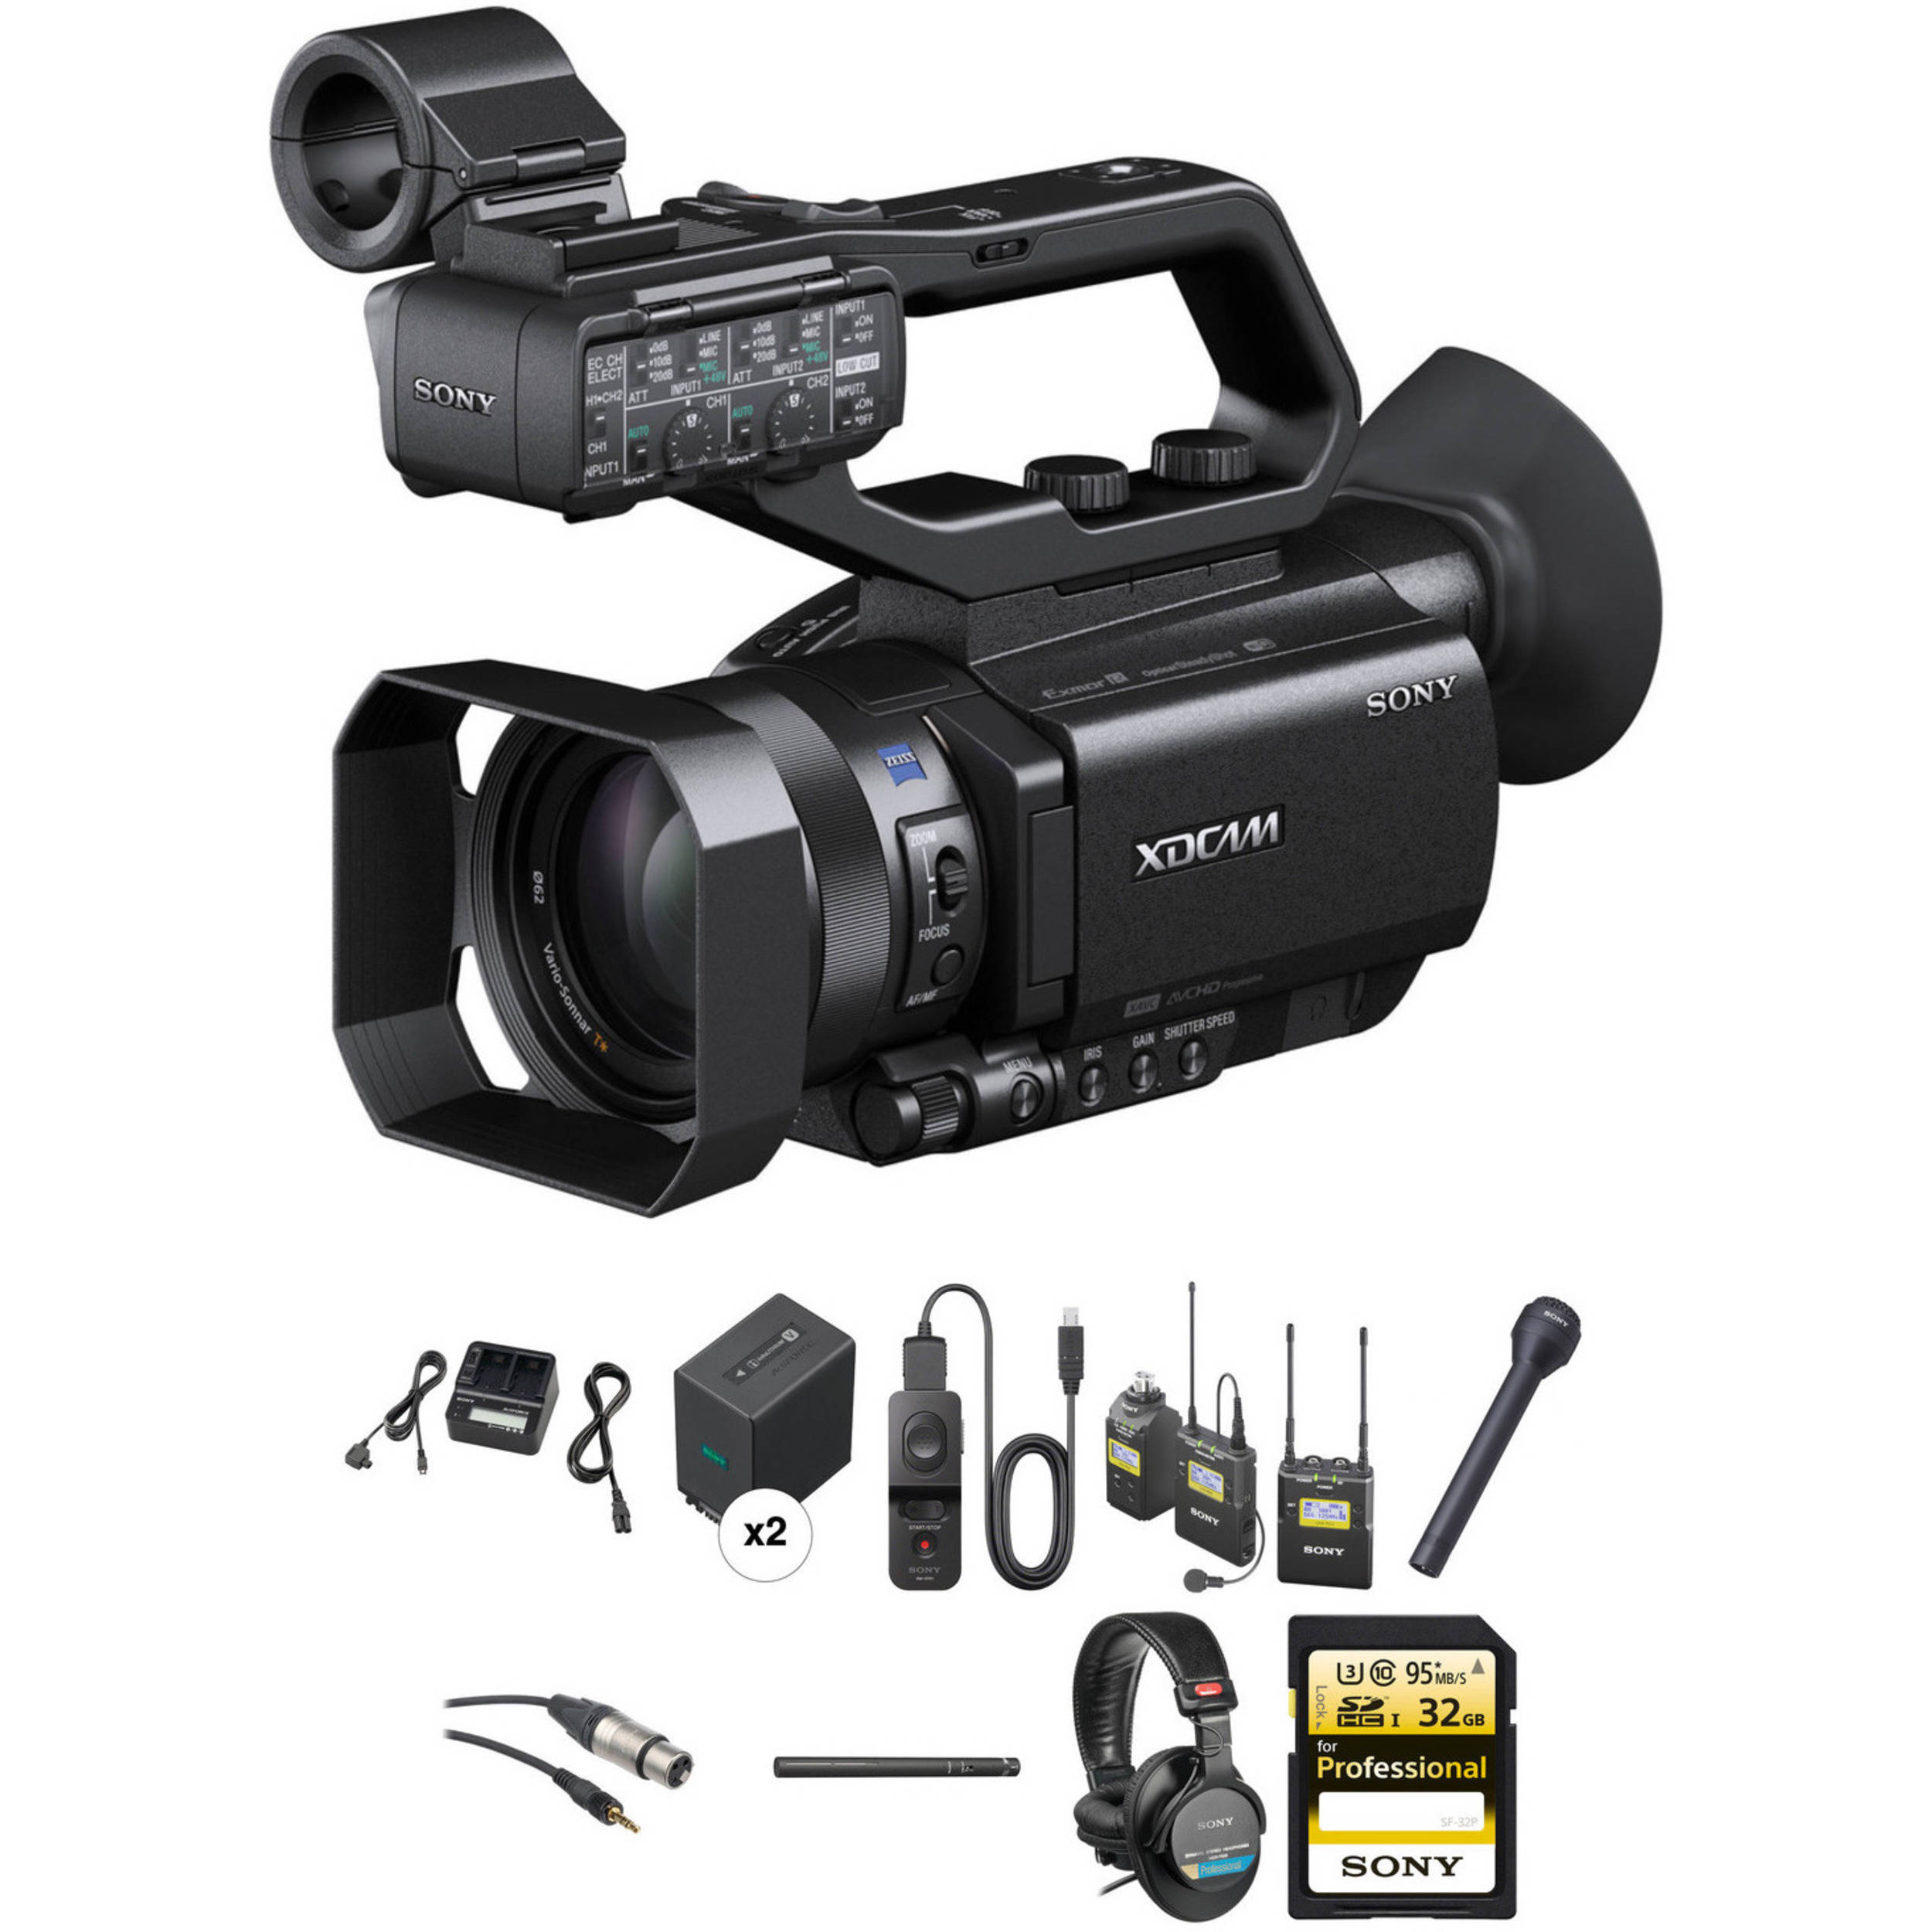 Sony PXW-X70 Advanced Video Journalist Kit with Backpack, Trolley, Rain Slicker,